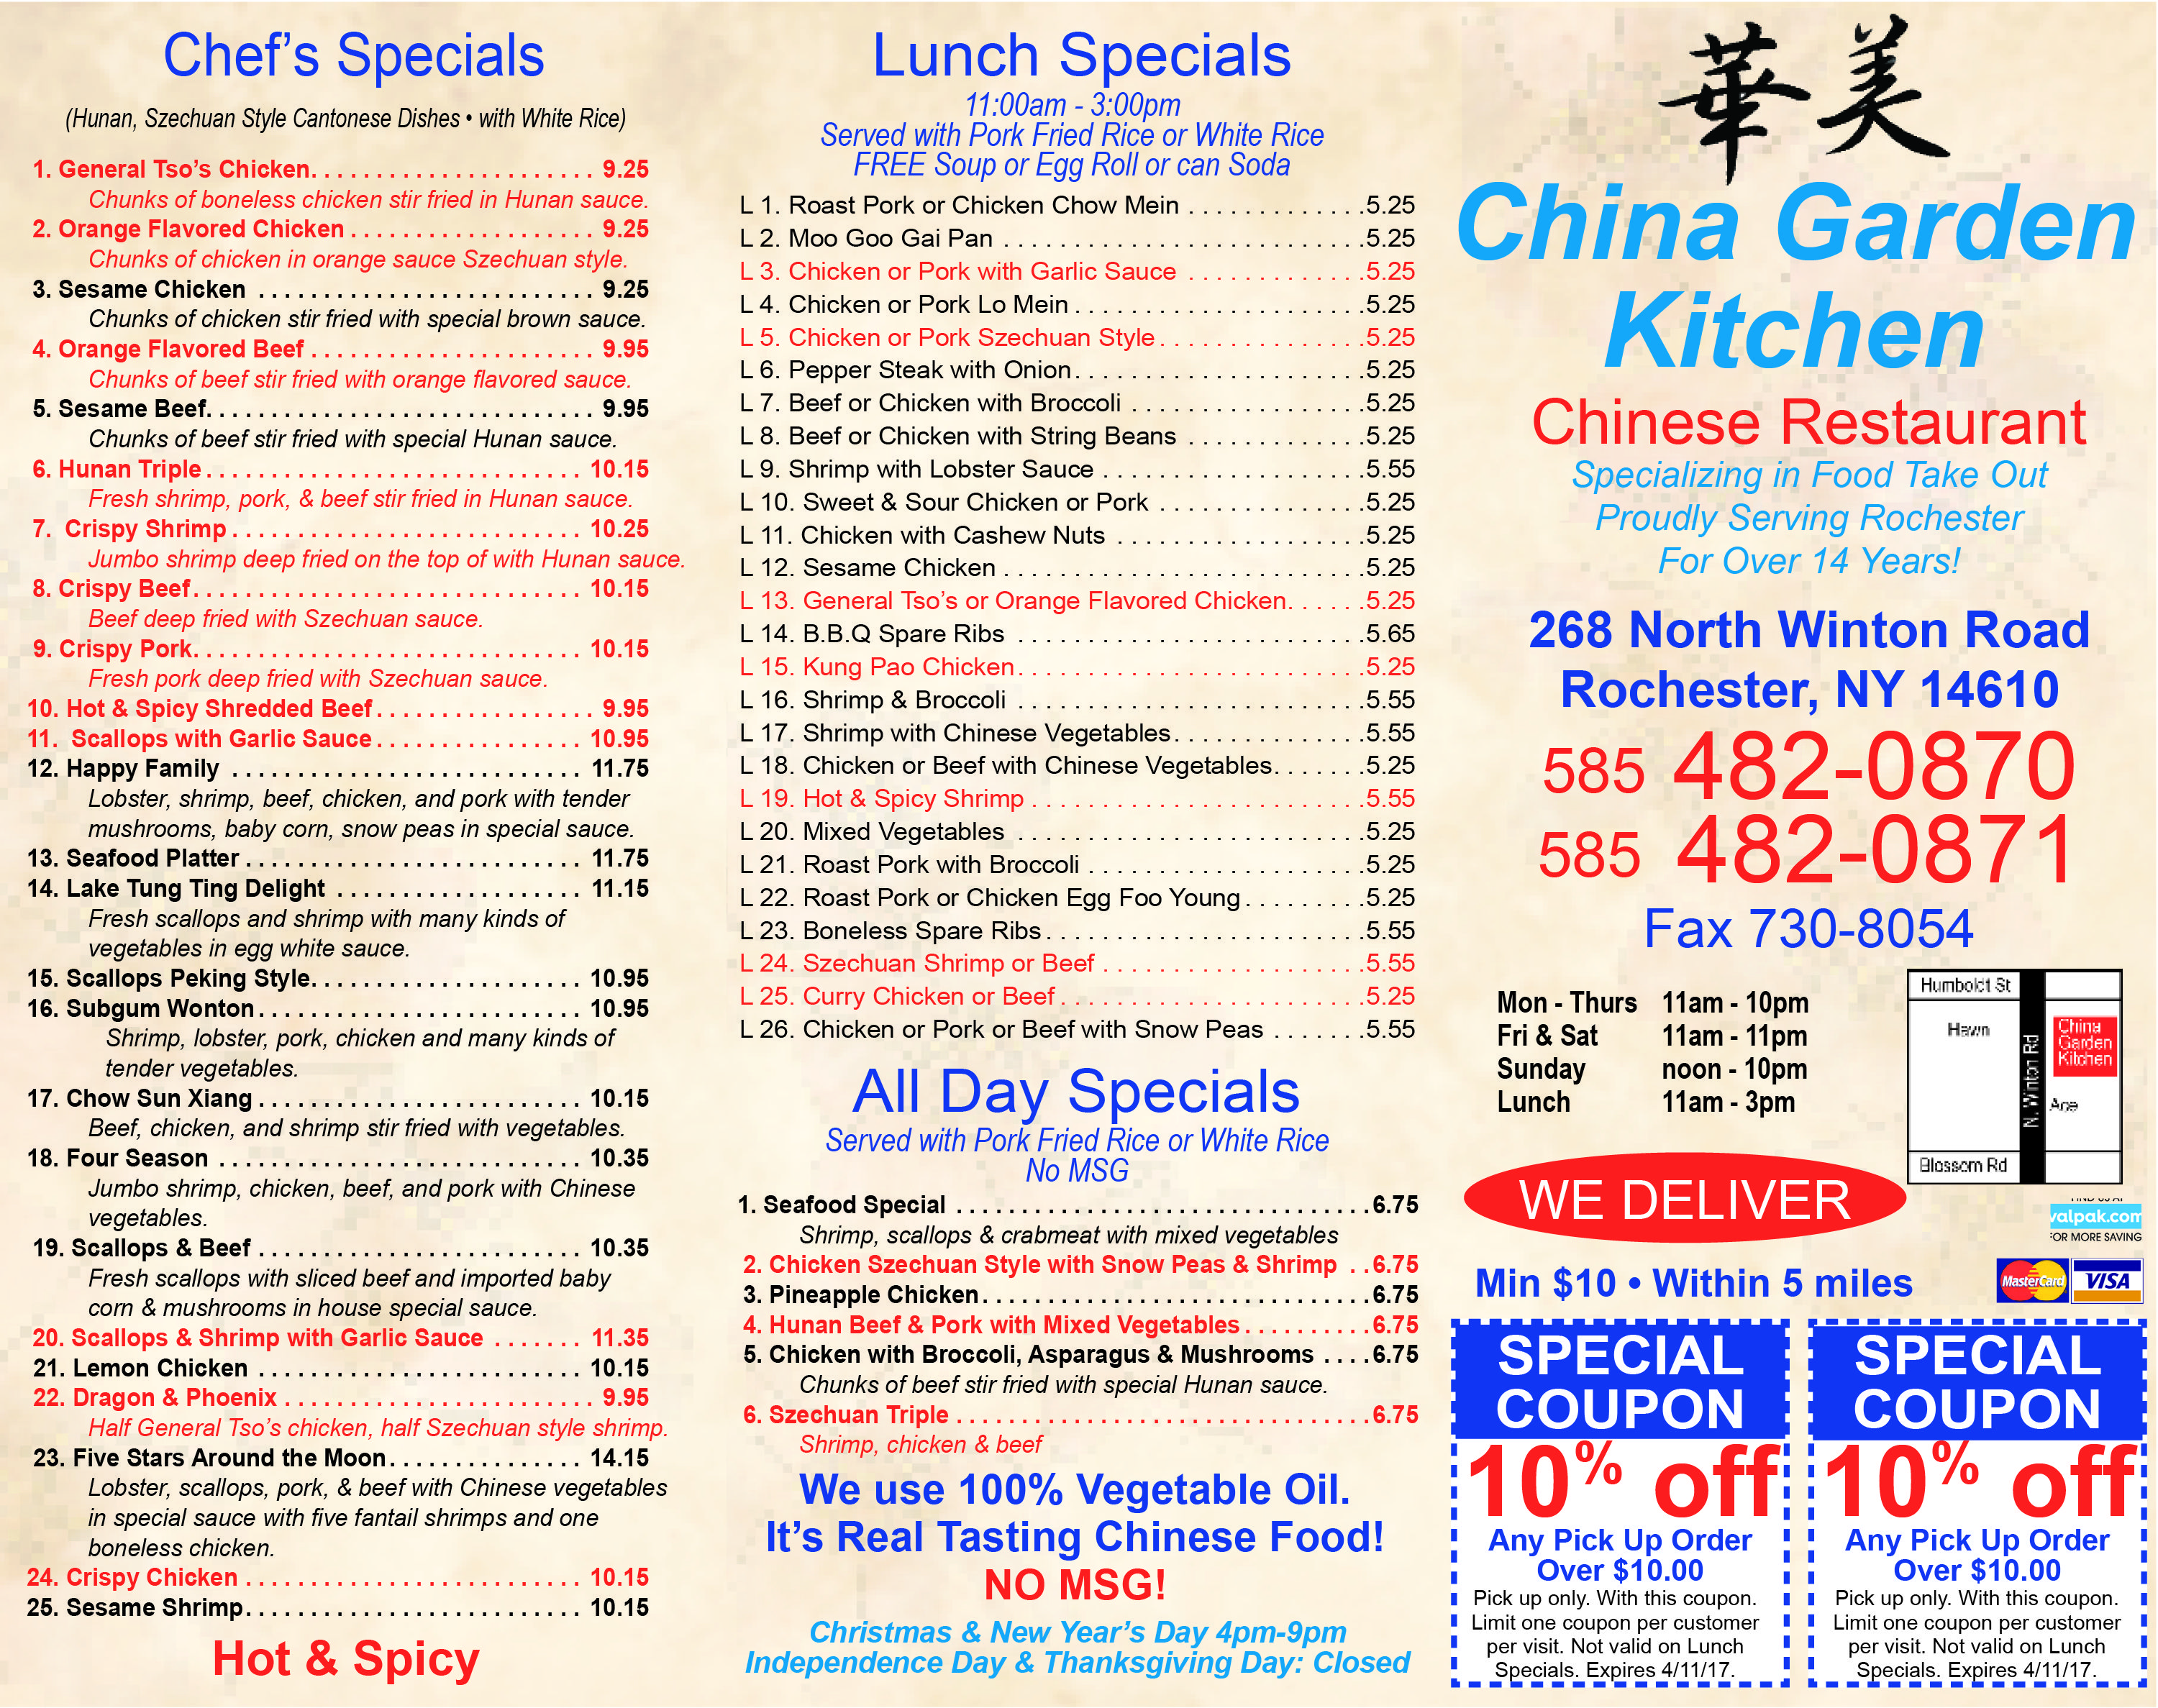 Come pick up a chef special lunch special or even an all